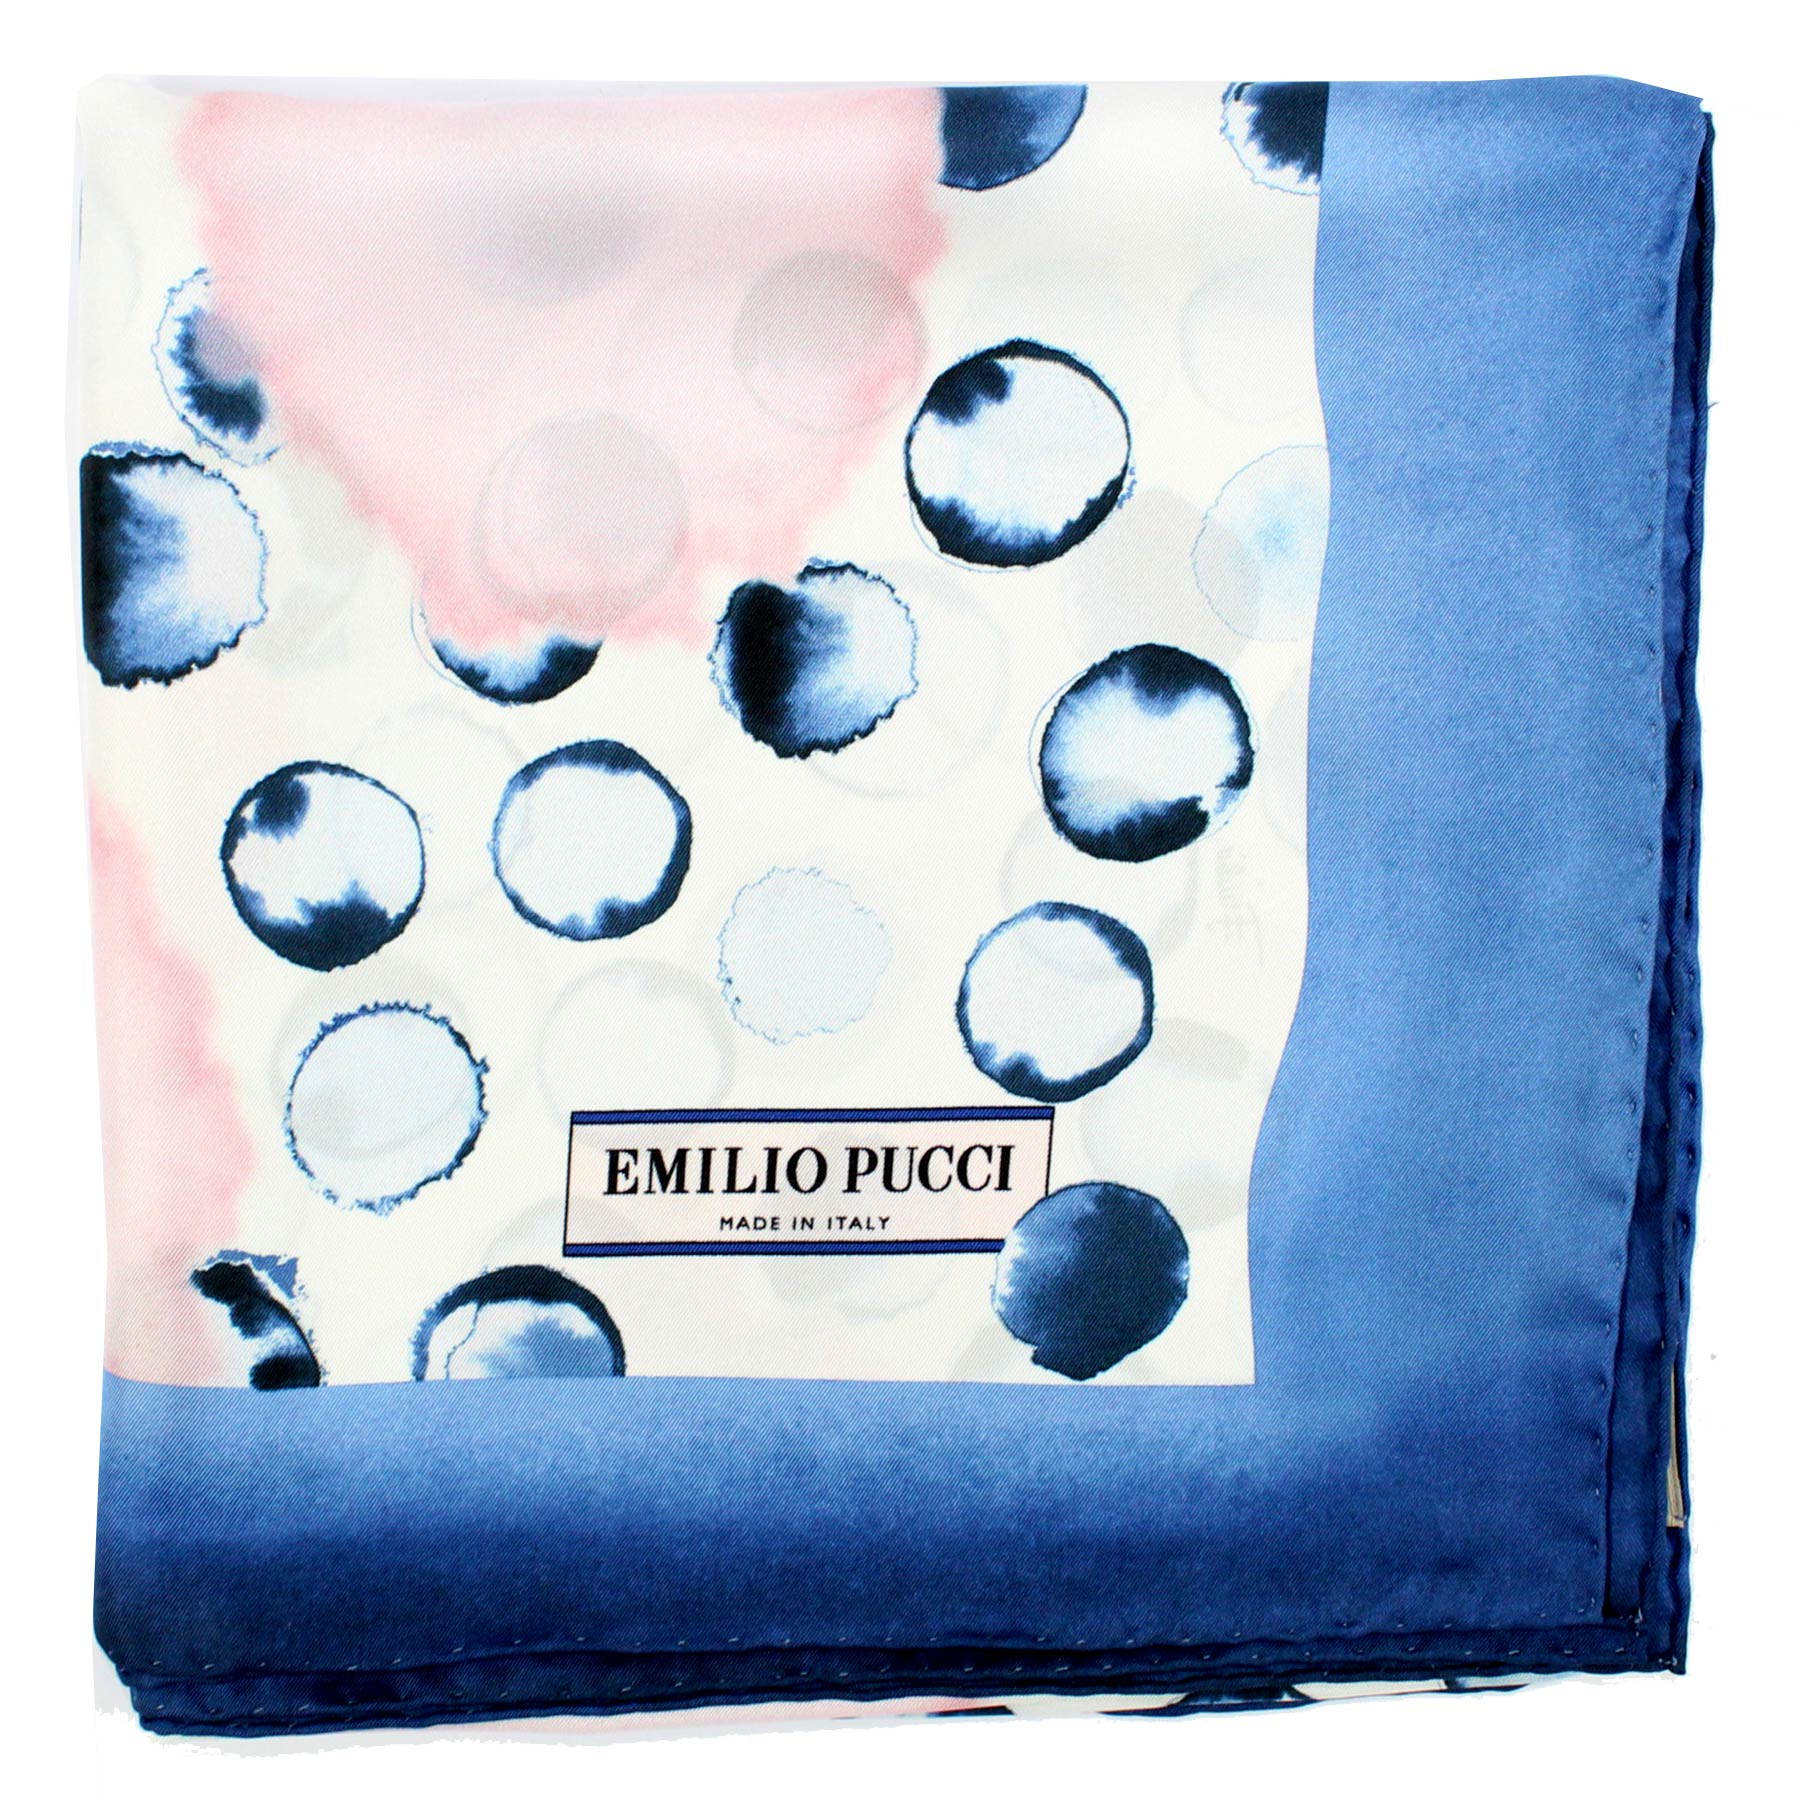 Emilio Pucci Scarf Midnight Blue Dots Design - Large Twill Silk Square Scarf